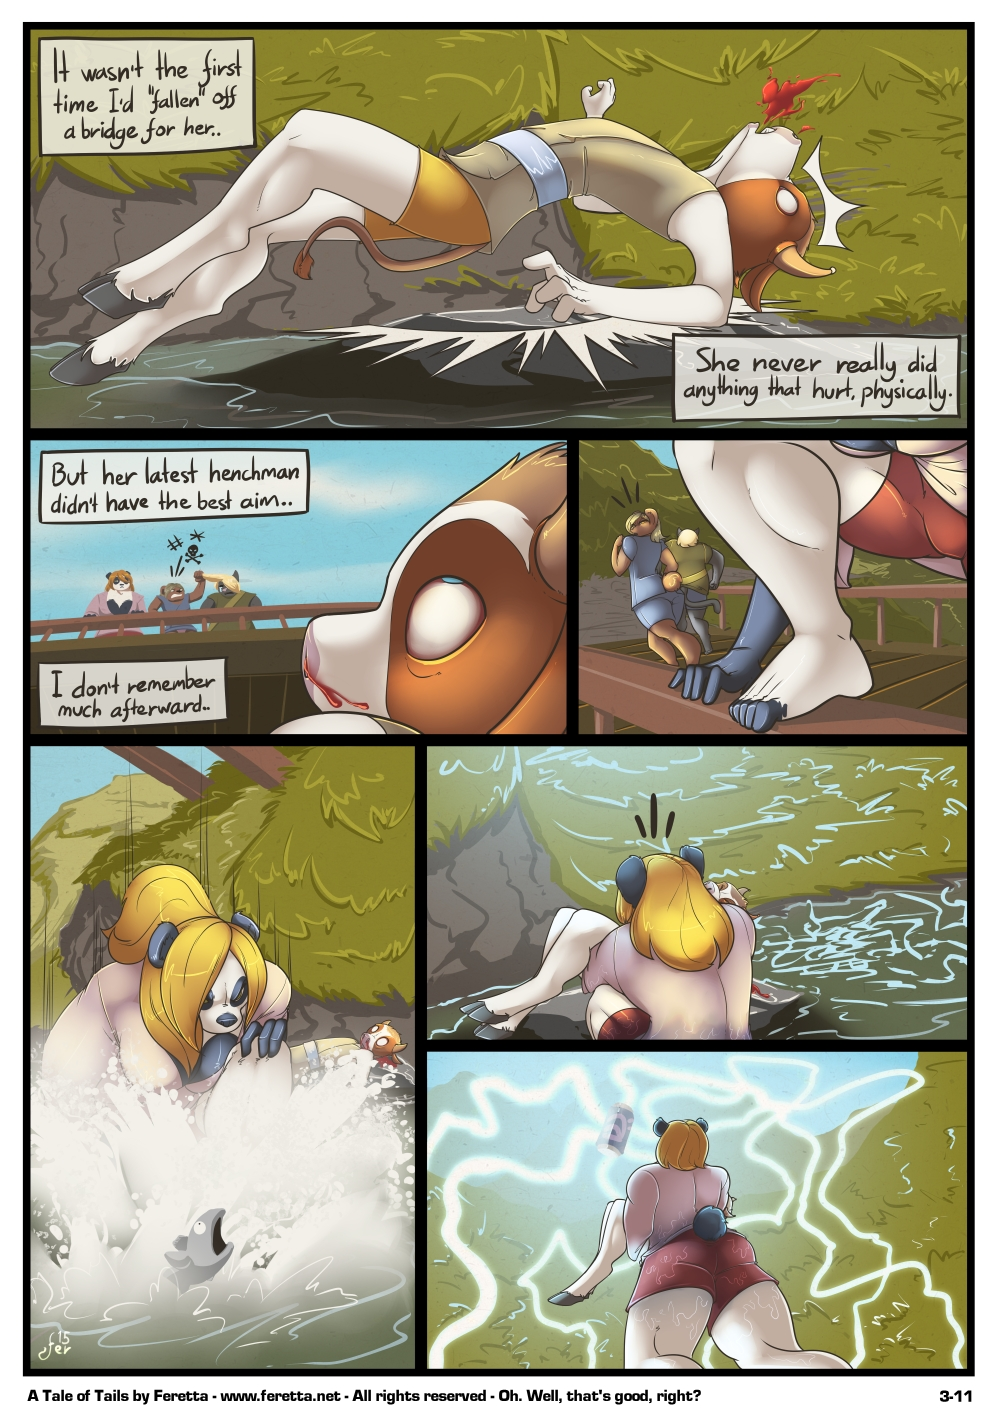 A Tale of Tails, 3-11